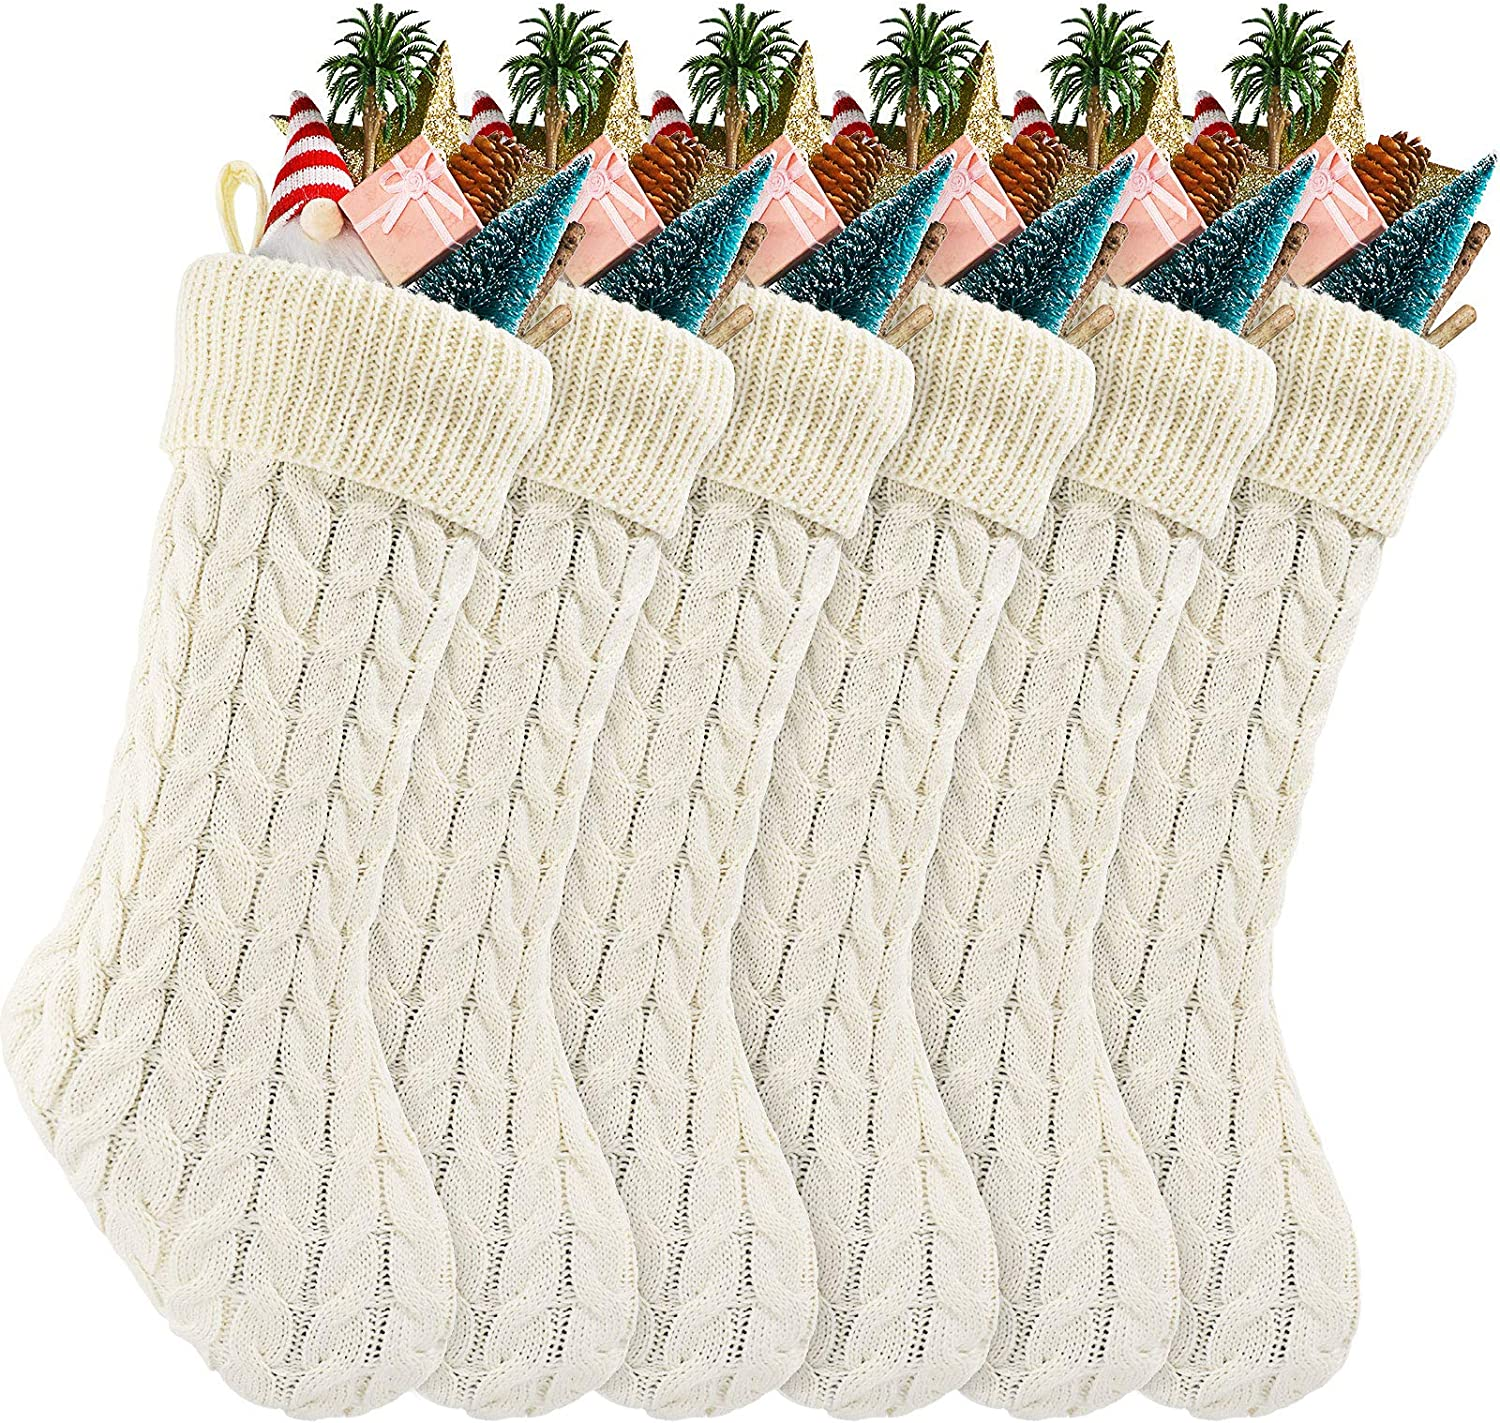 6 Packs 18 Inch Cable Knit Stockings Price reduction Knitted Christmas Max 65% OFF Stoc Xmas